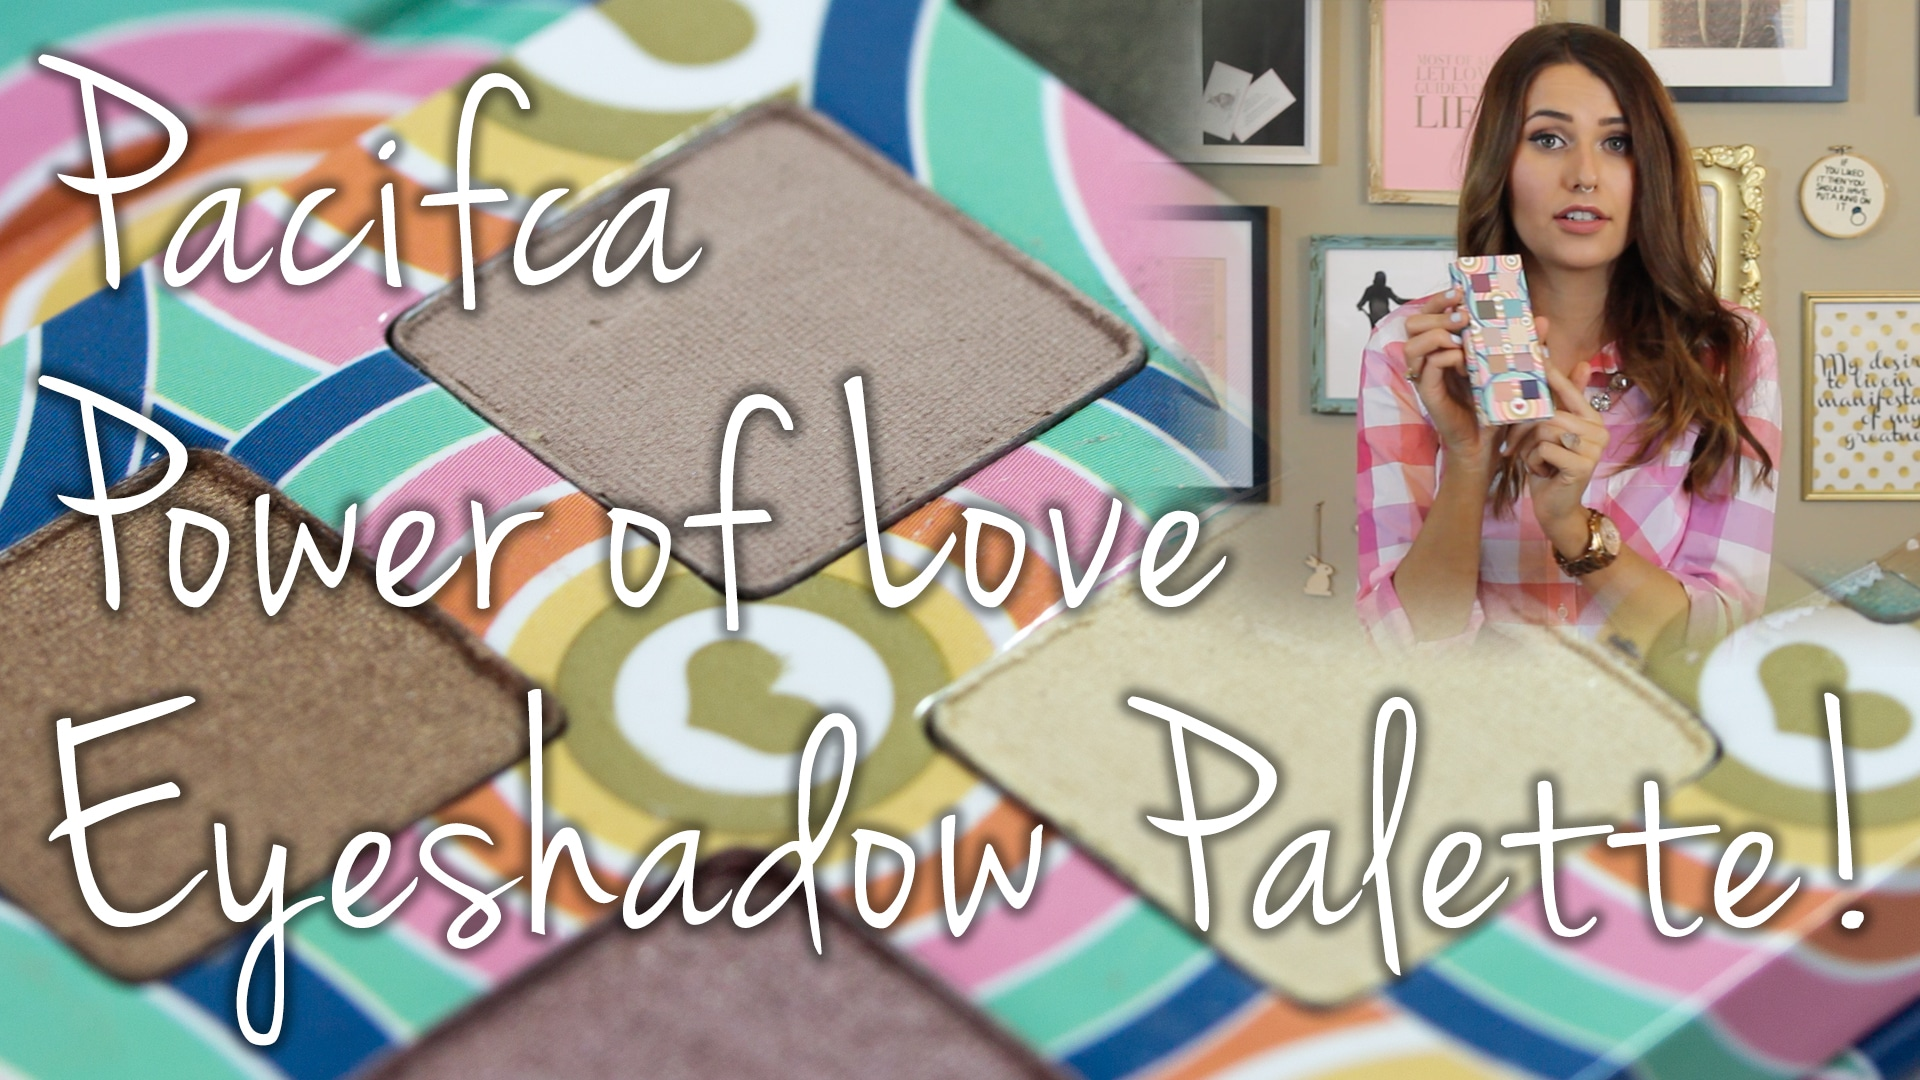 Pacifica Power of Love Eyeshadow Palette First Impressions & Swatches Video